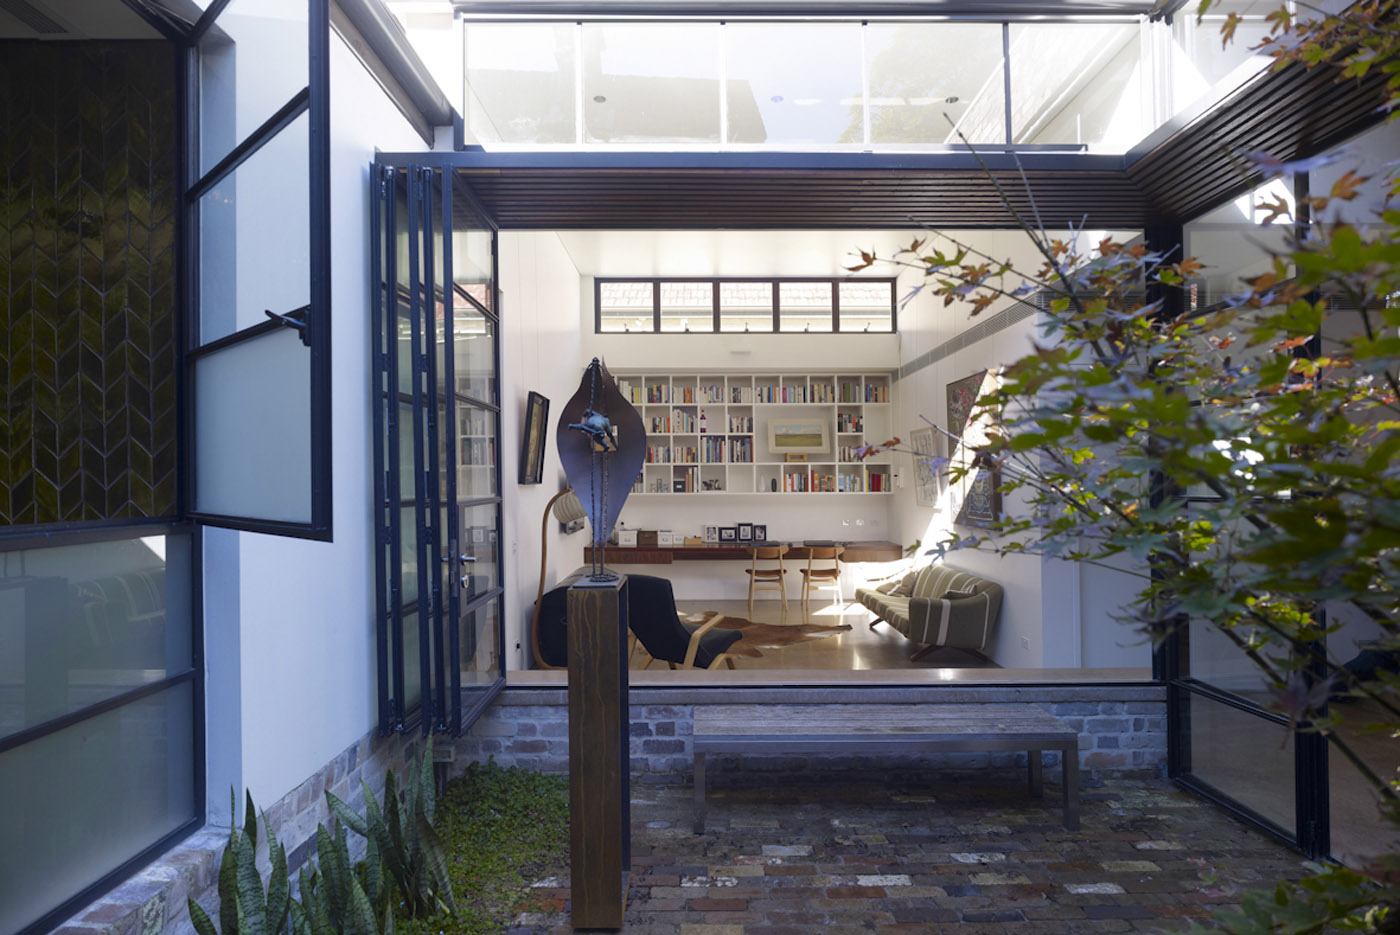 Smee Schoff House by Sam Crawford Architects, view to living space from backyard